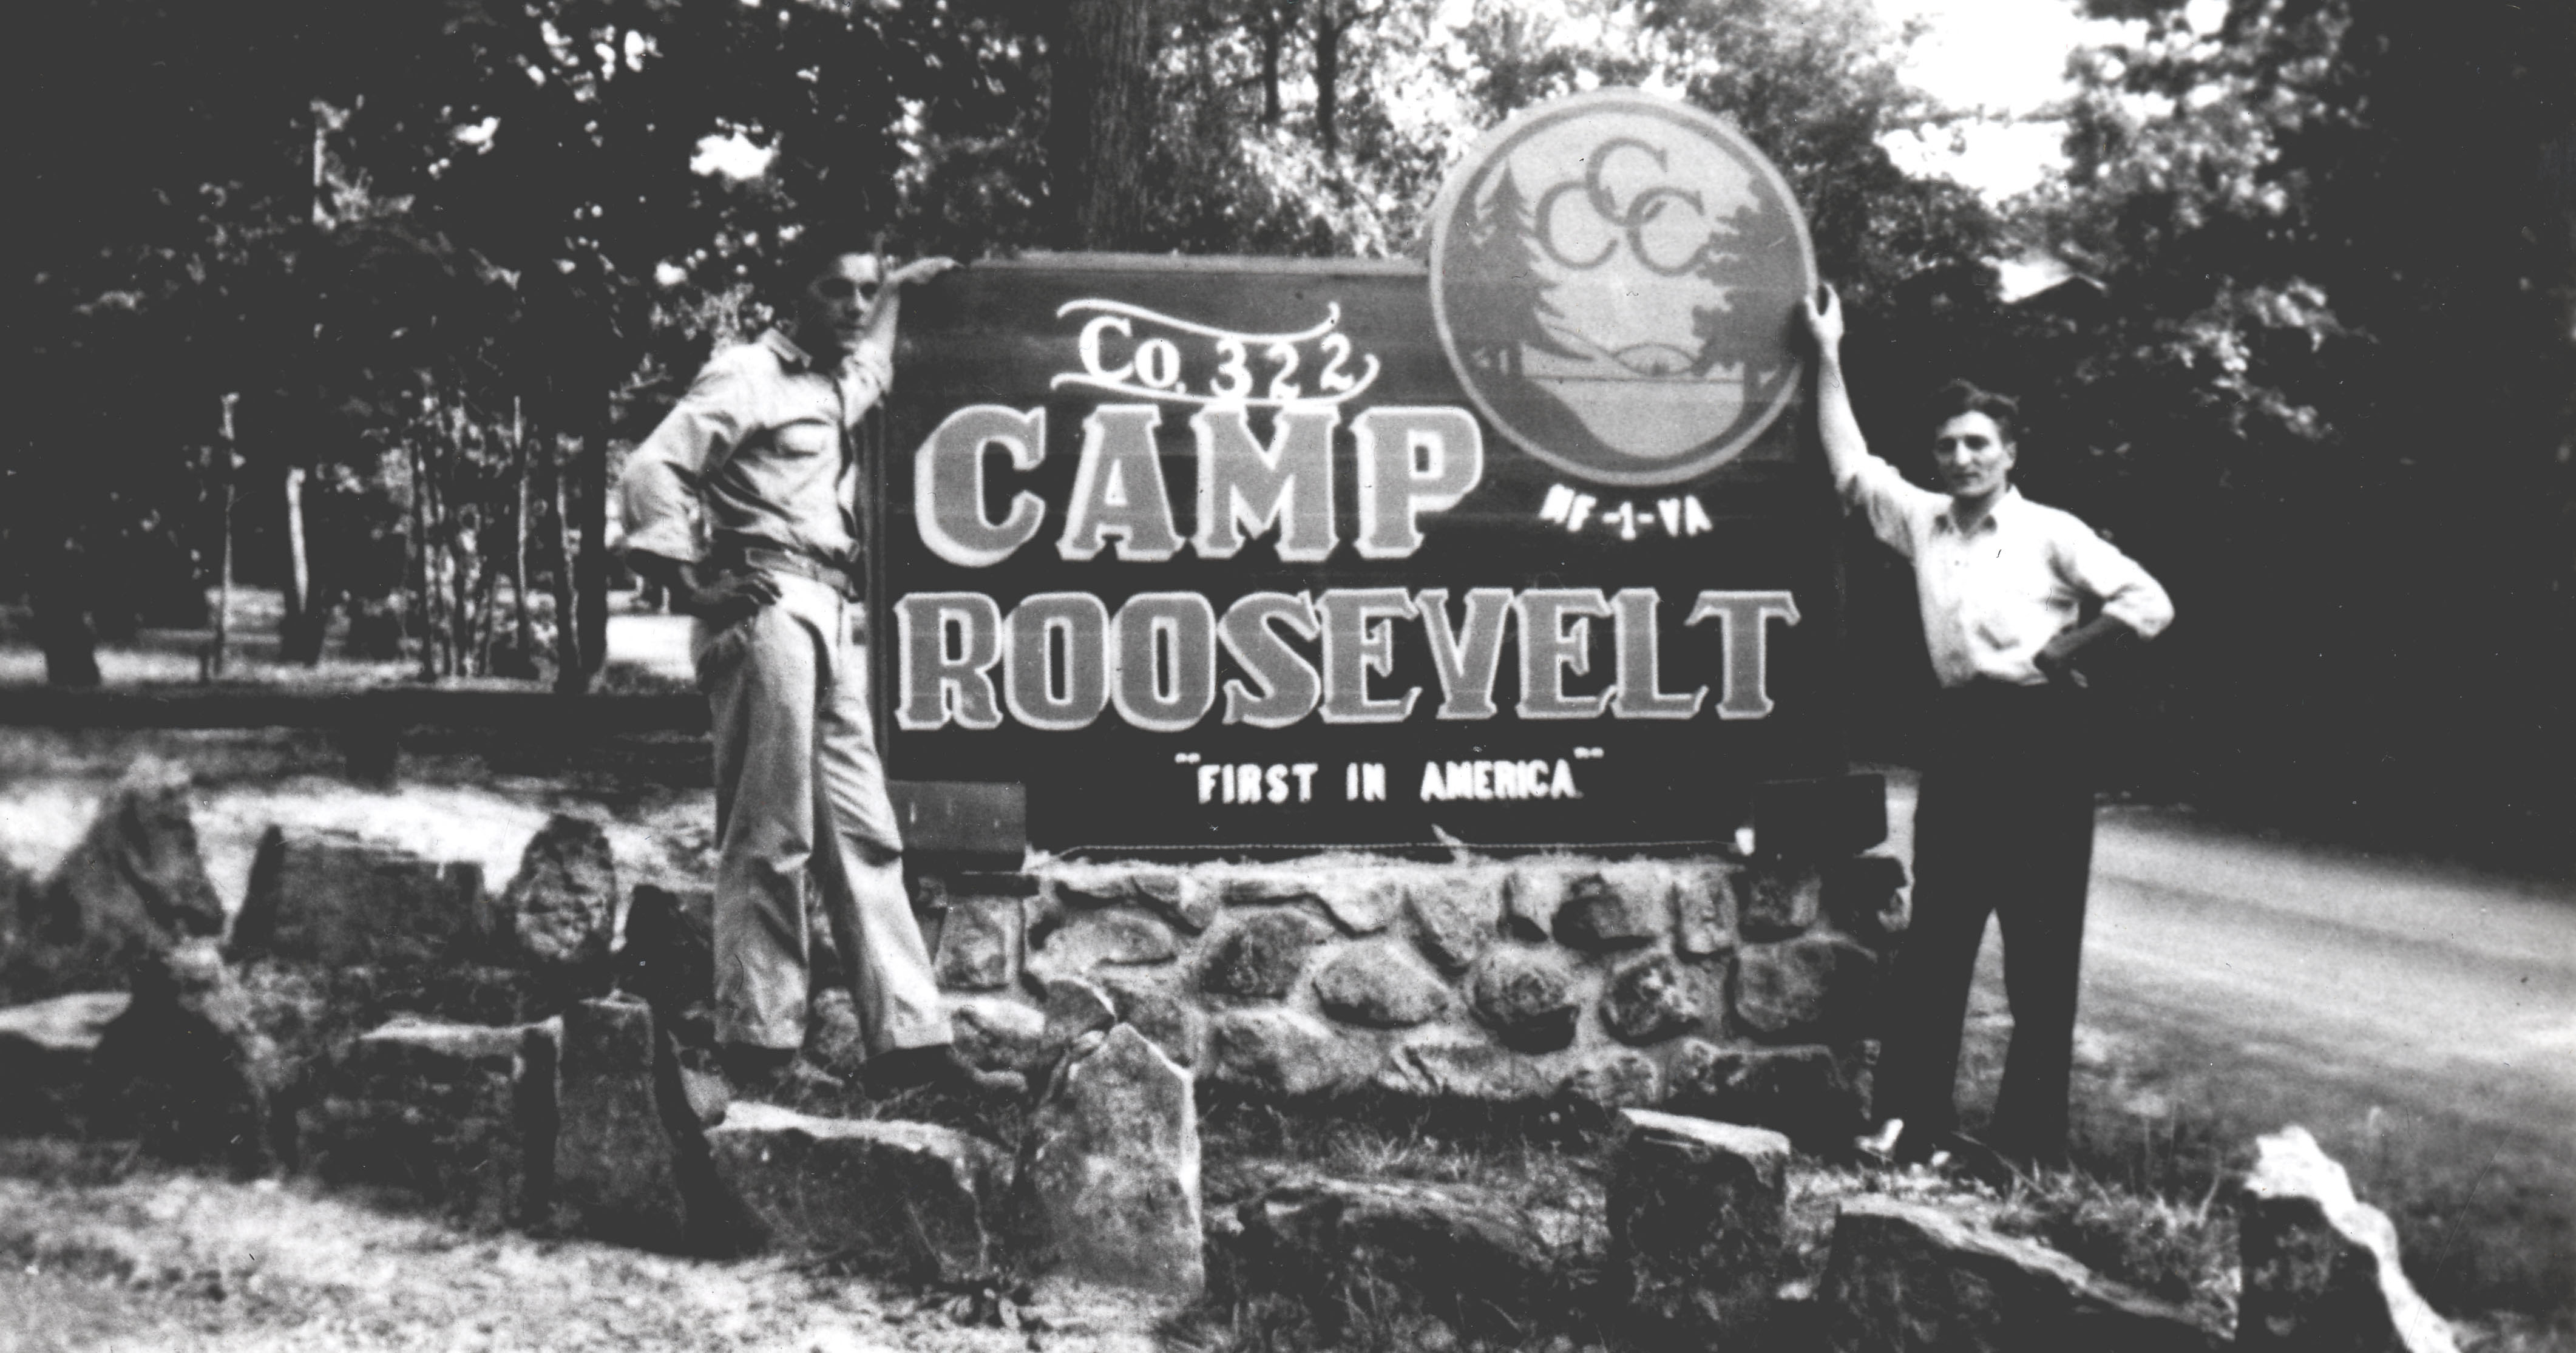 Two men pose in front of sign for Camp Roosevelt